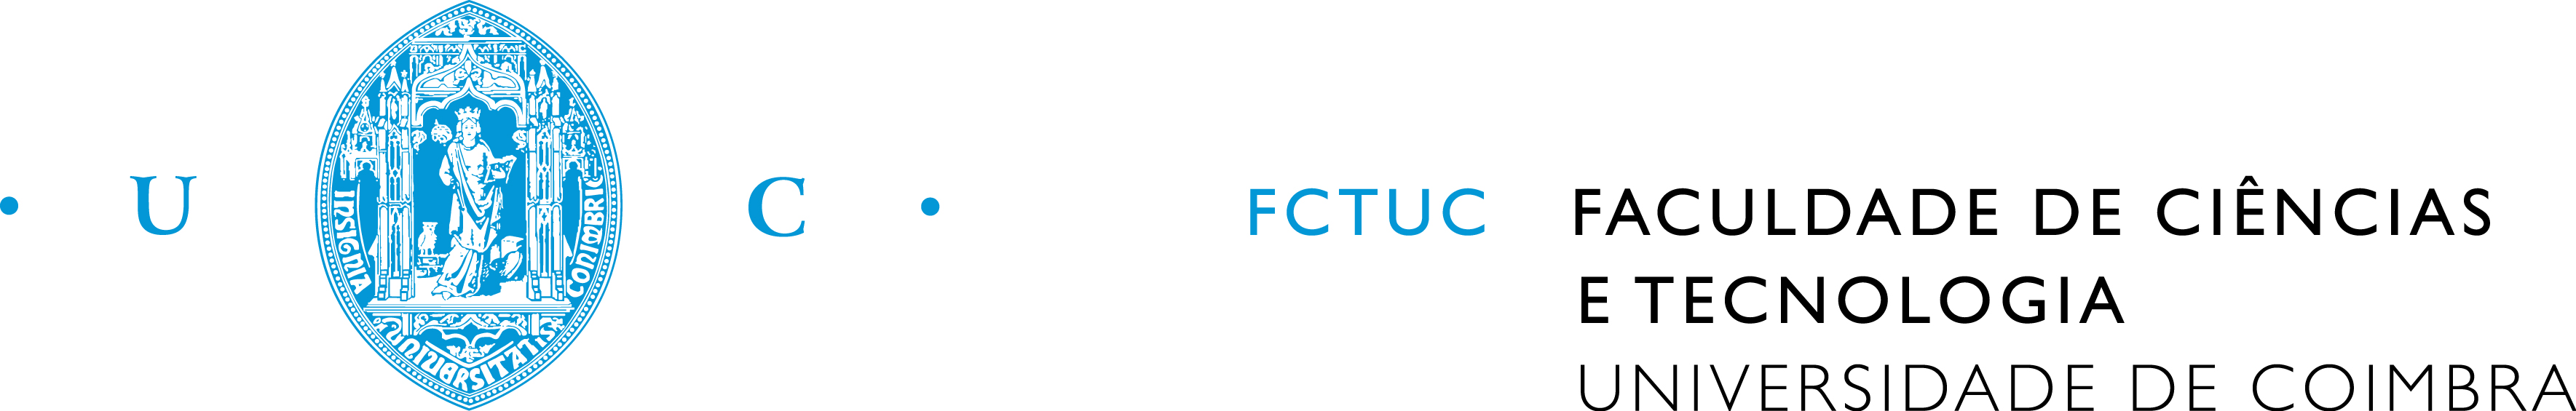 FCTUC-1